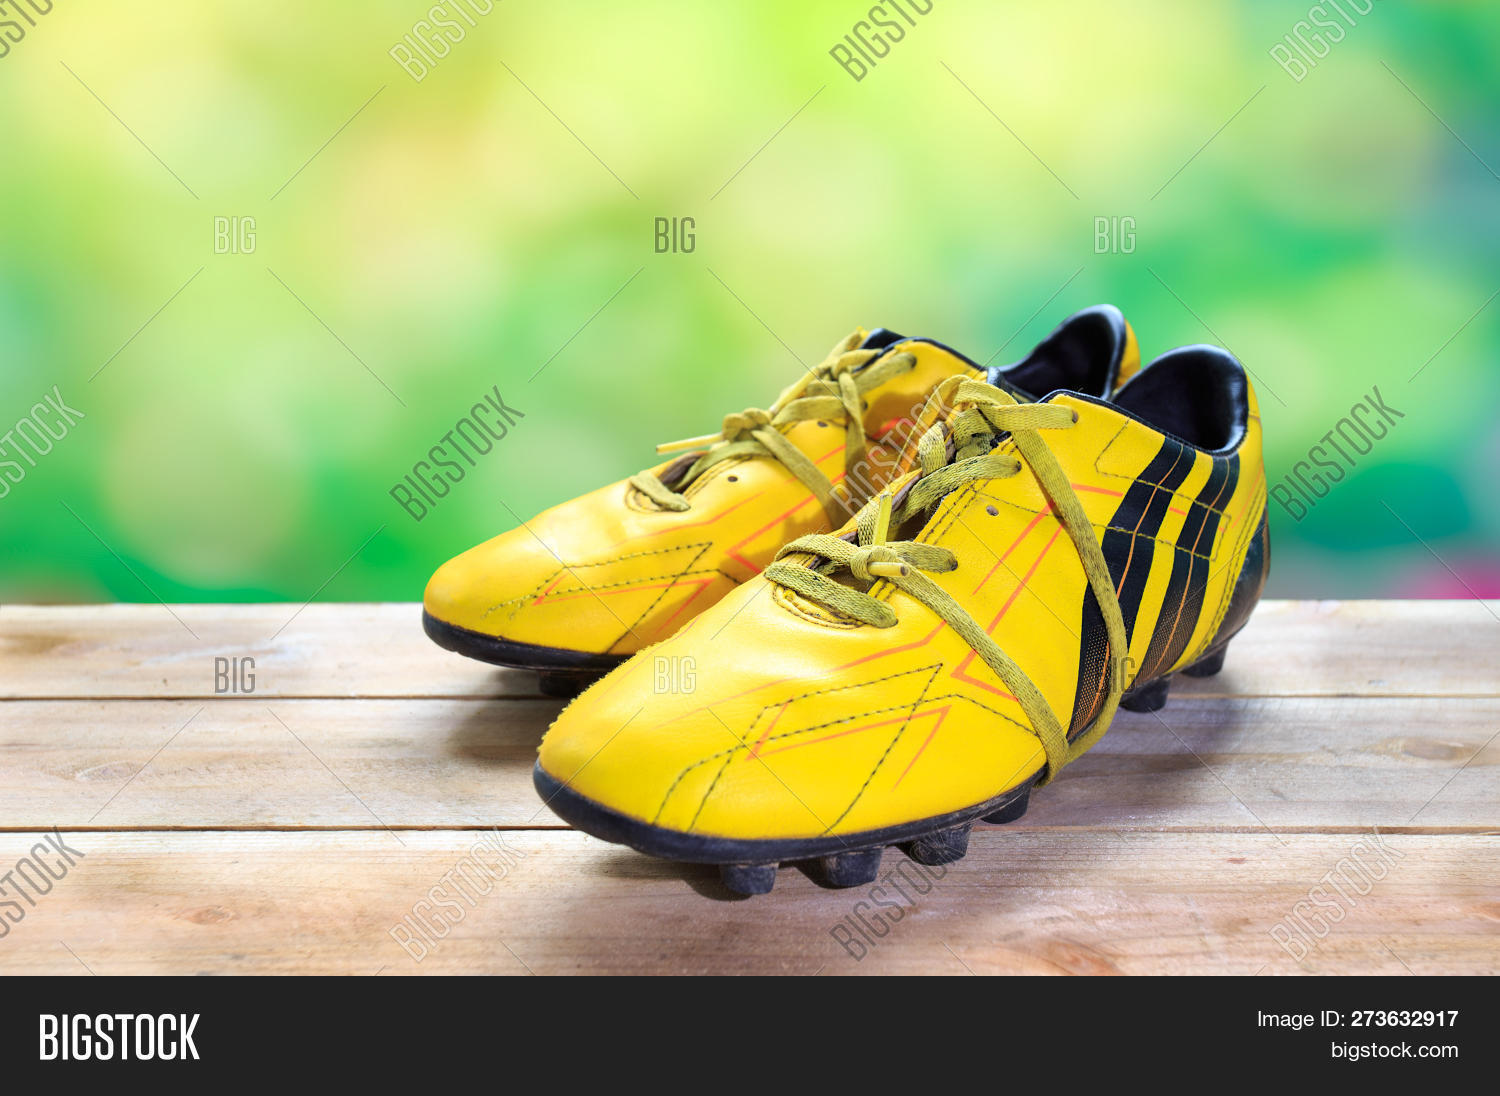 6455d0015 A Pair Of Football Boots Old Yellow Football Shoes Placed Natural Green  Background.